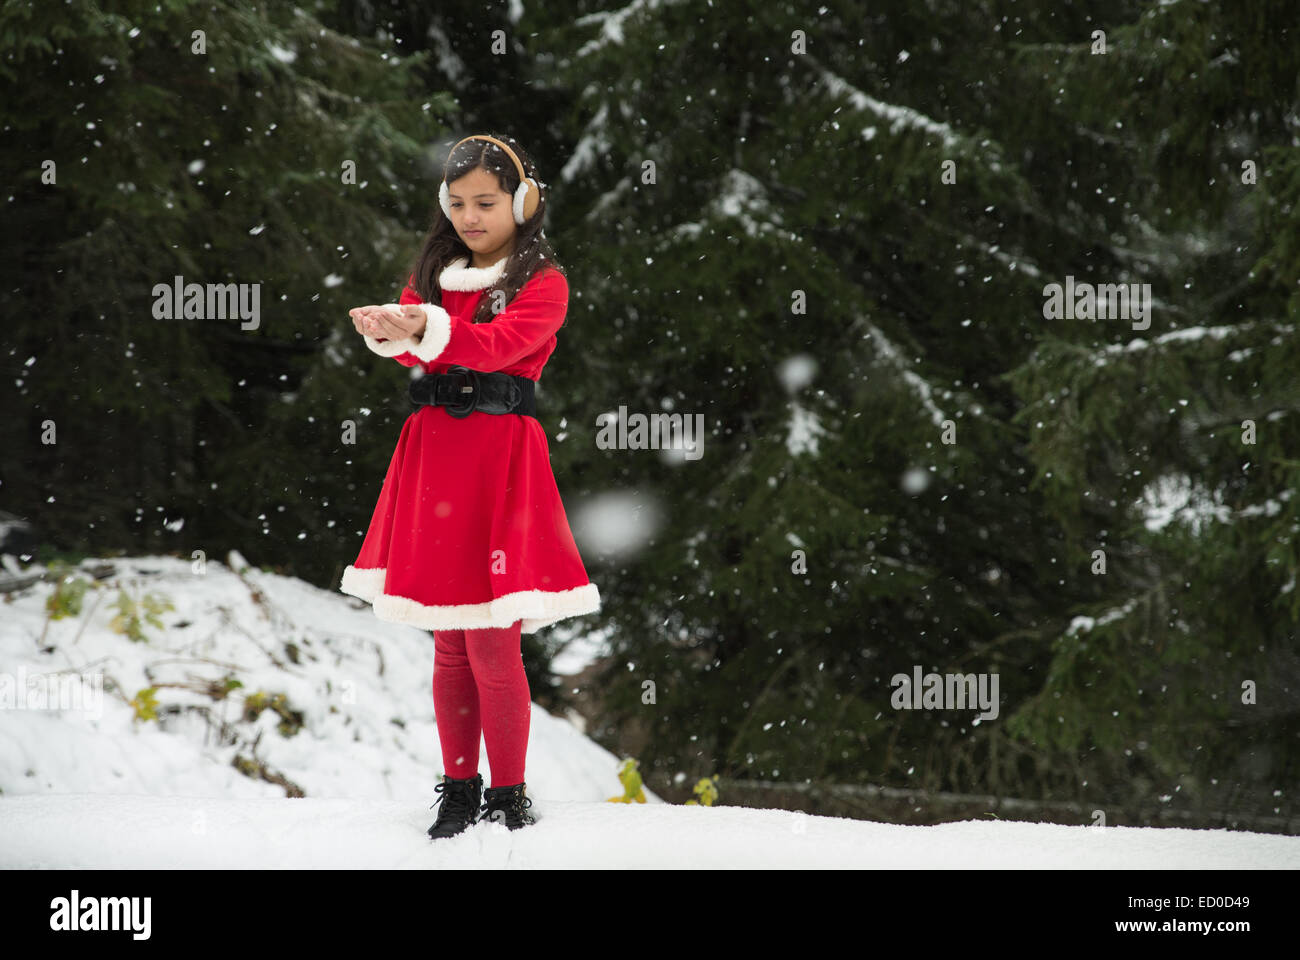 Girl wearing Christmas Santa outfit catching snow - Stock Image